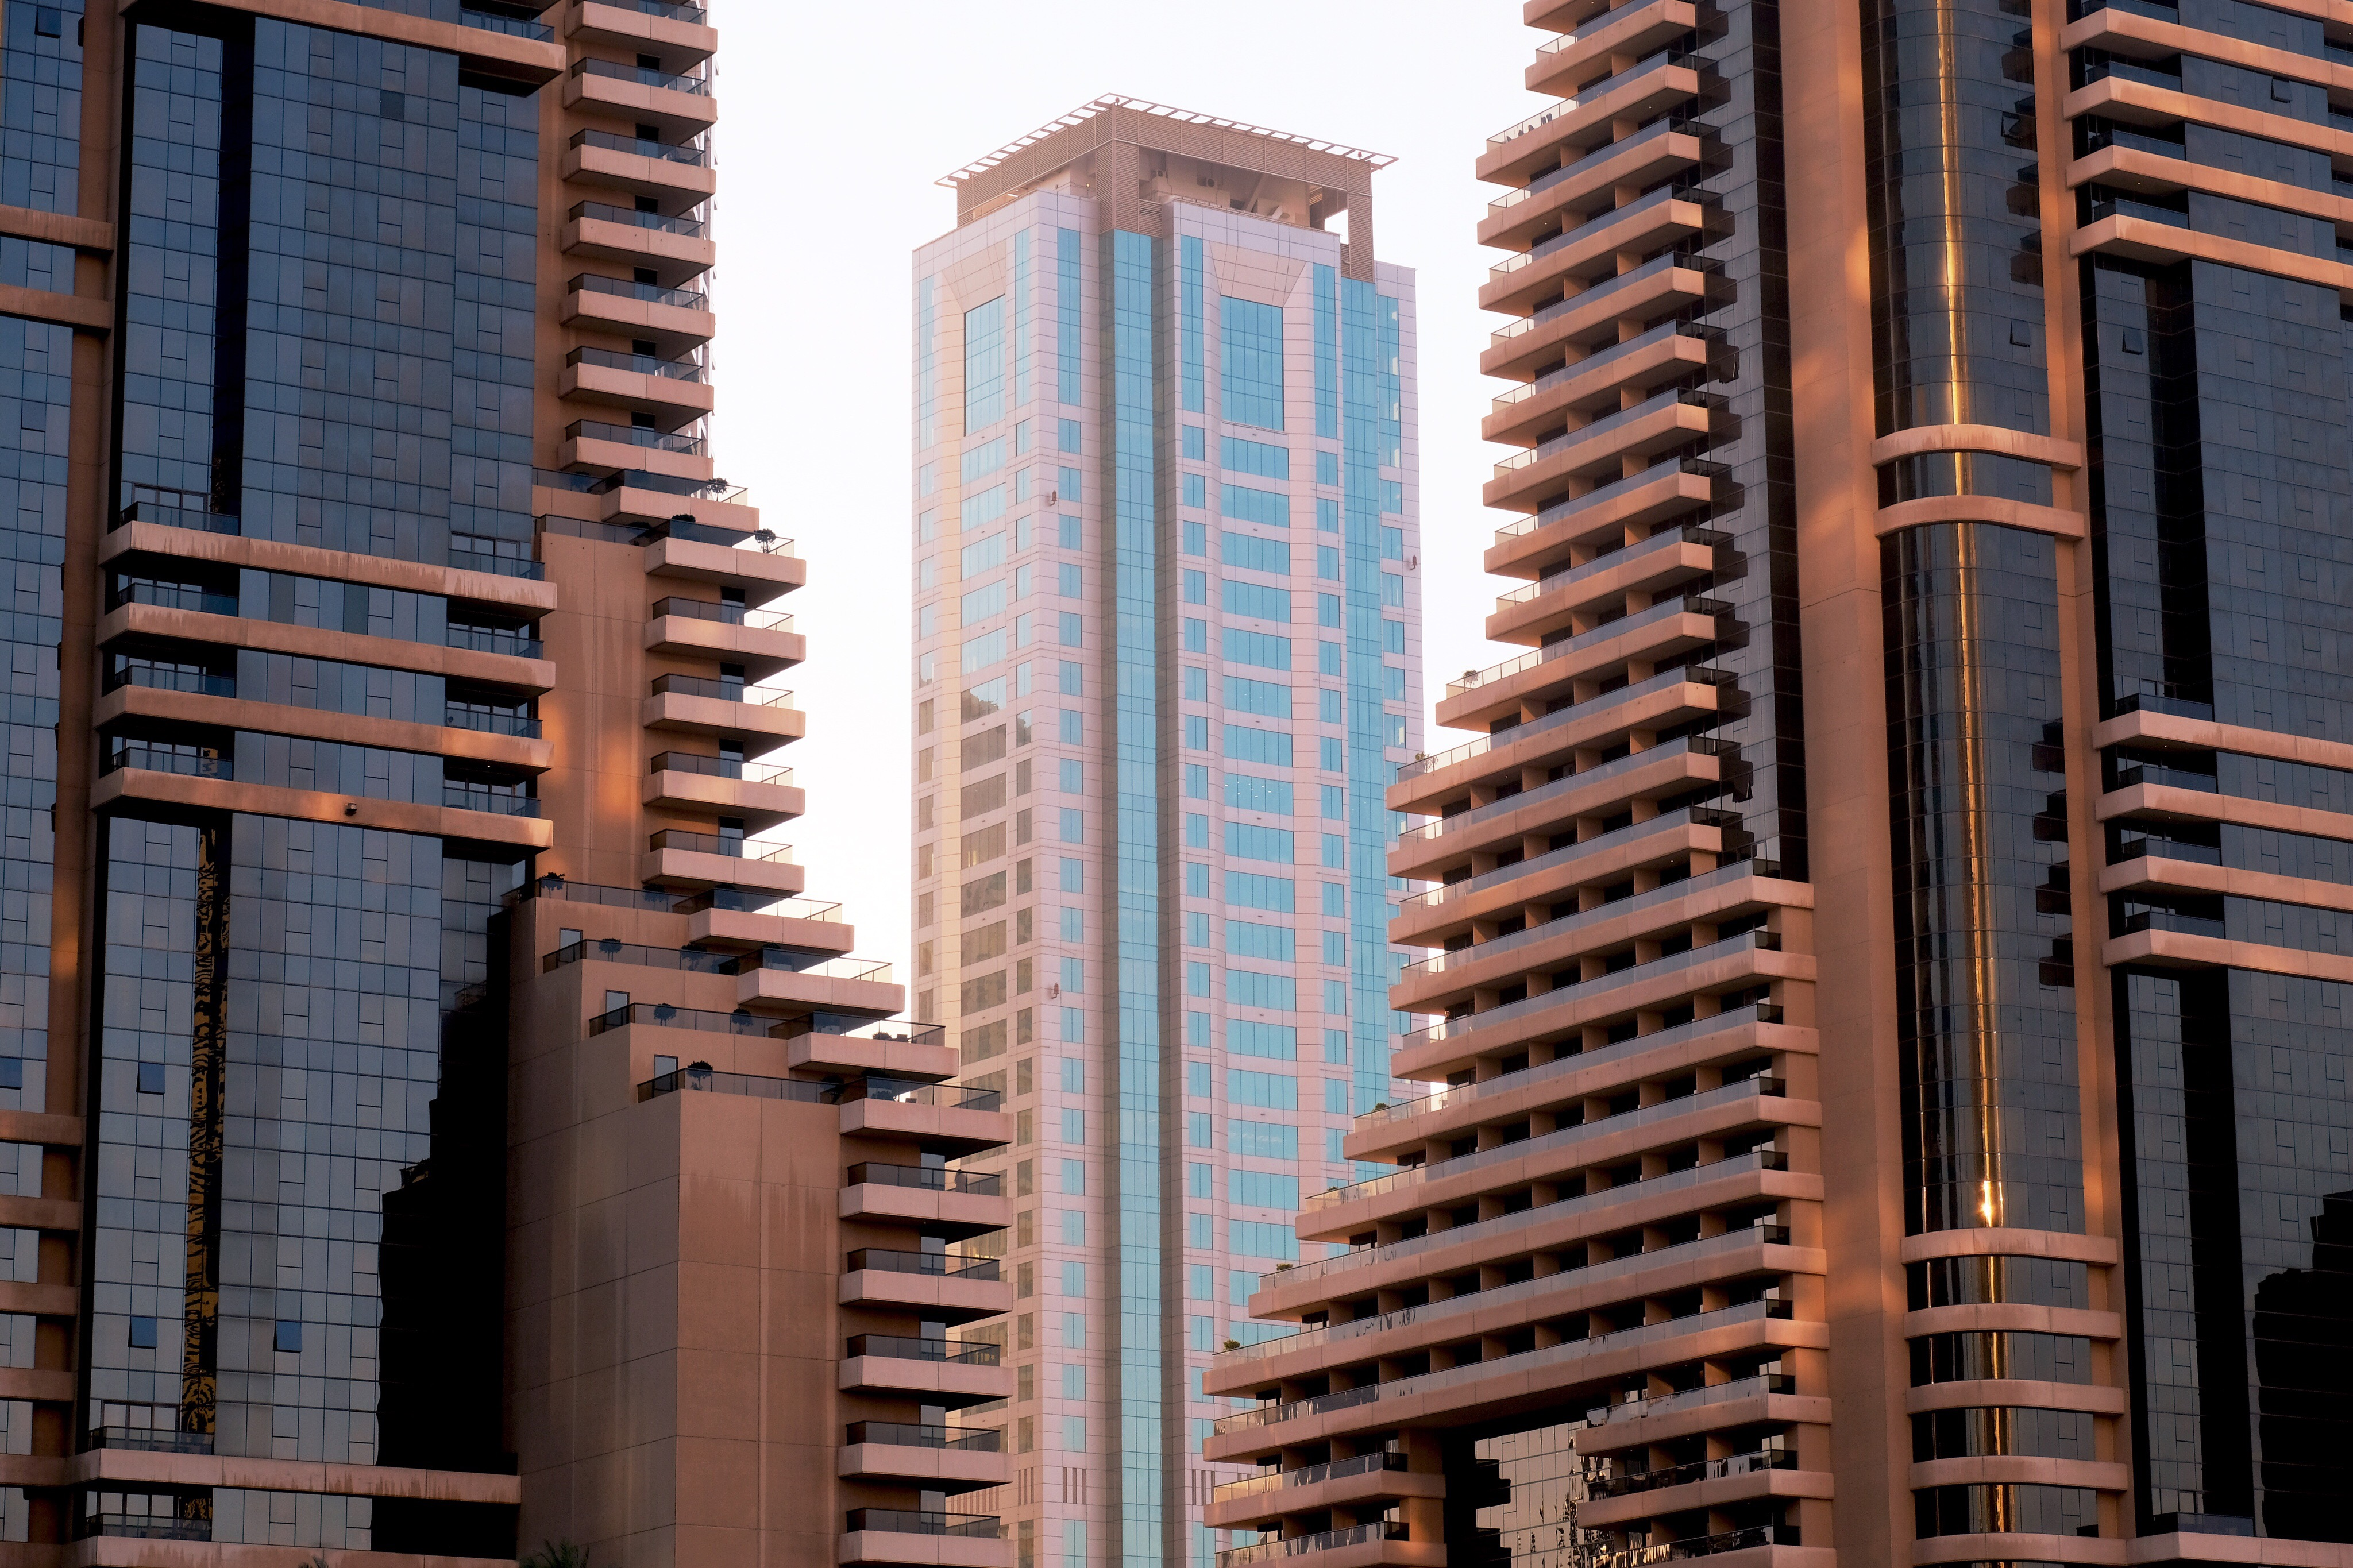 Photo of a skyscraper in the background flanked by two buildings on either side in the foreground.